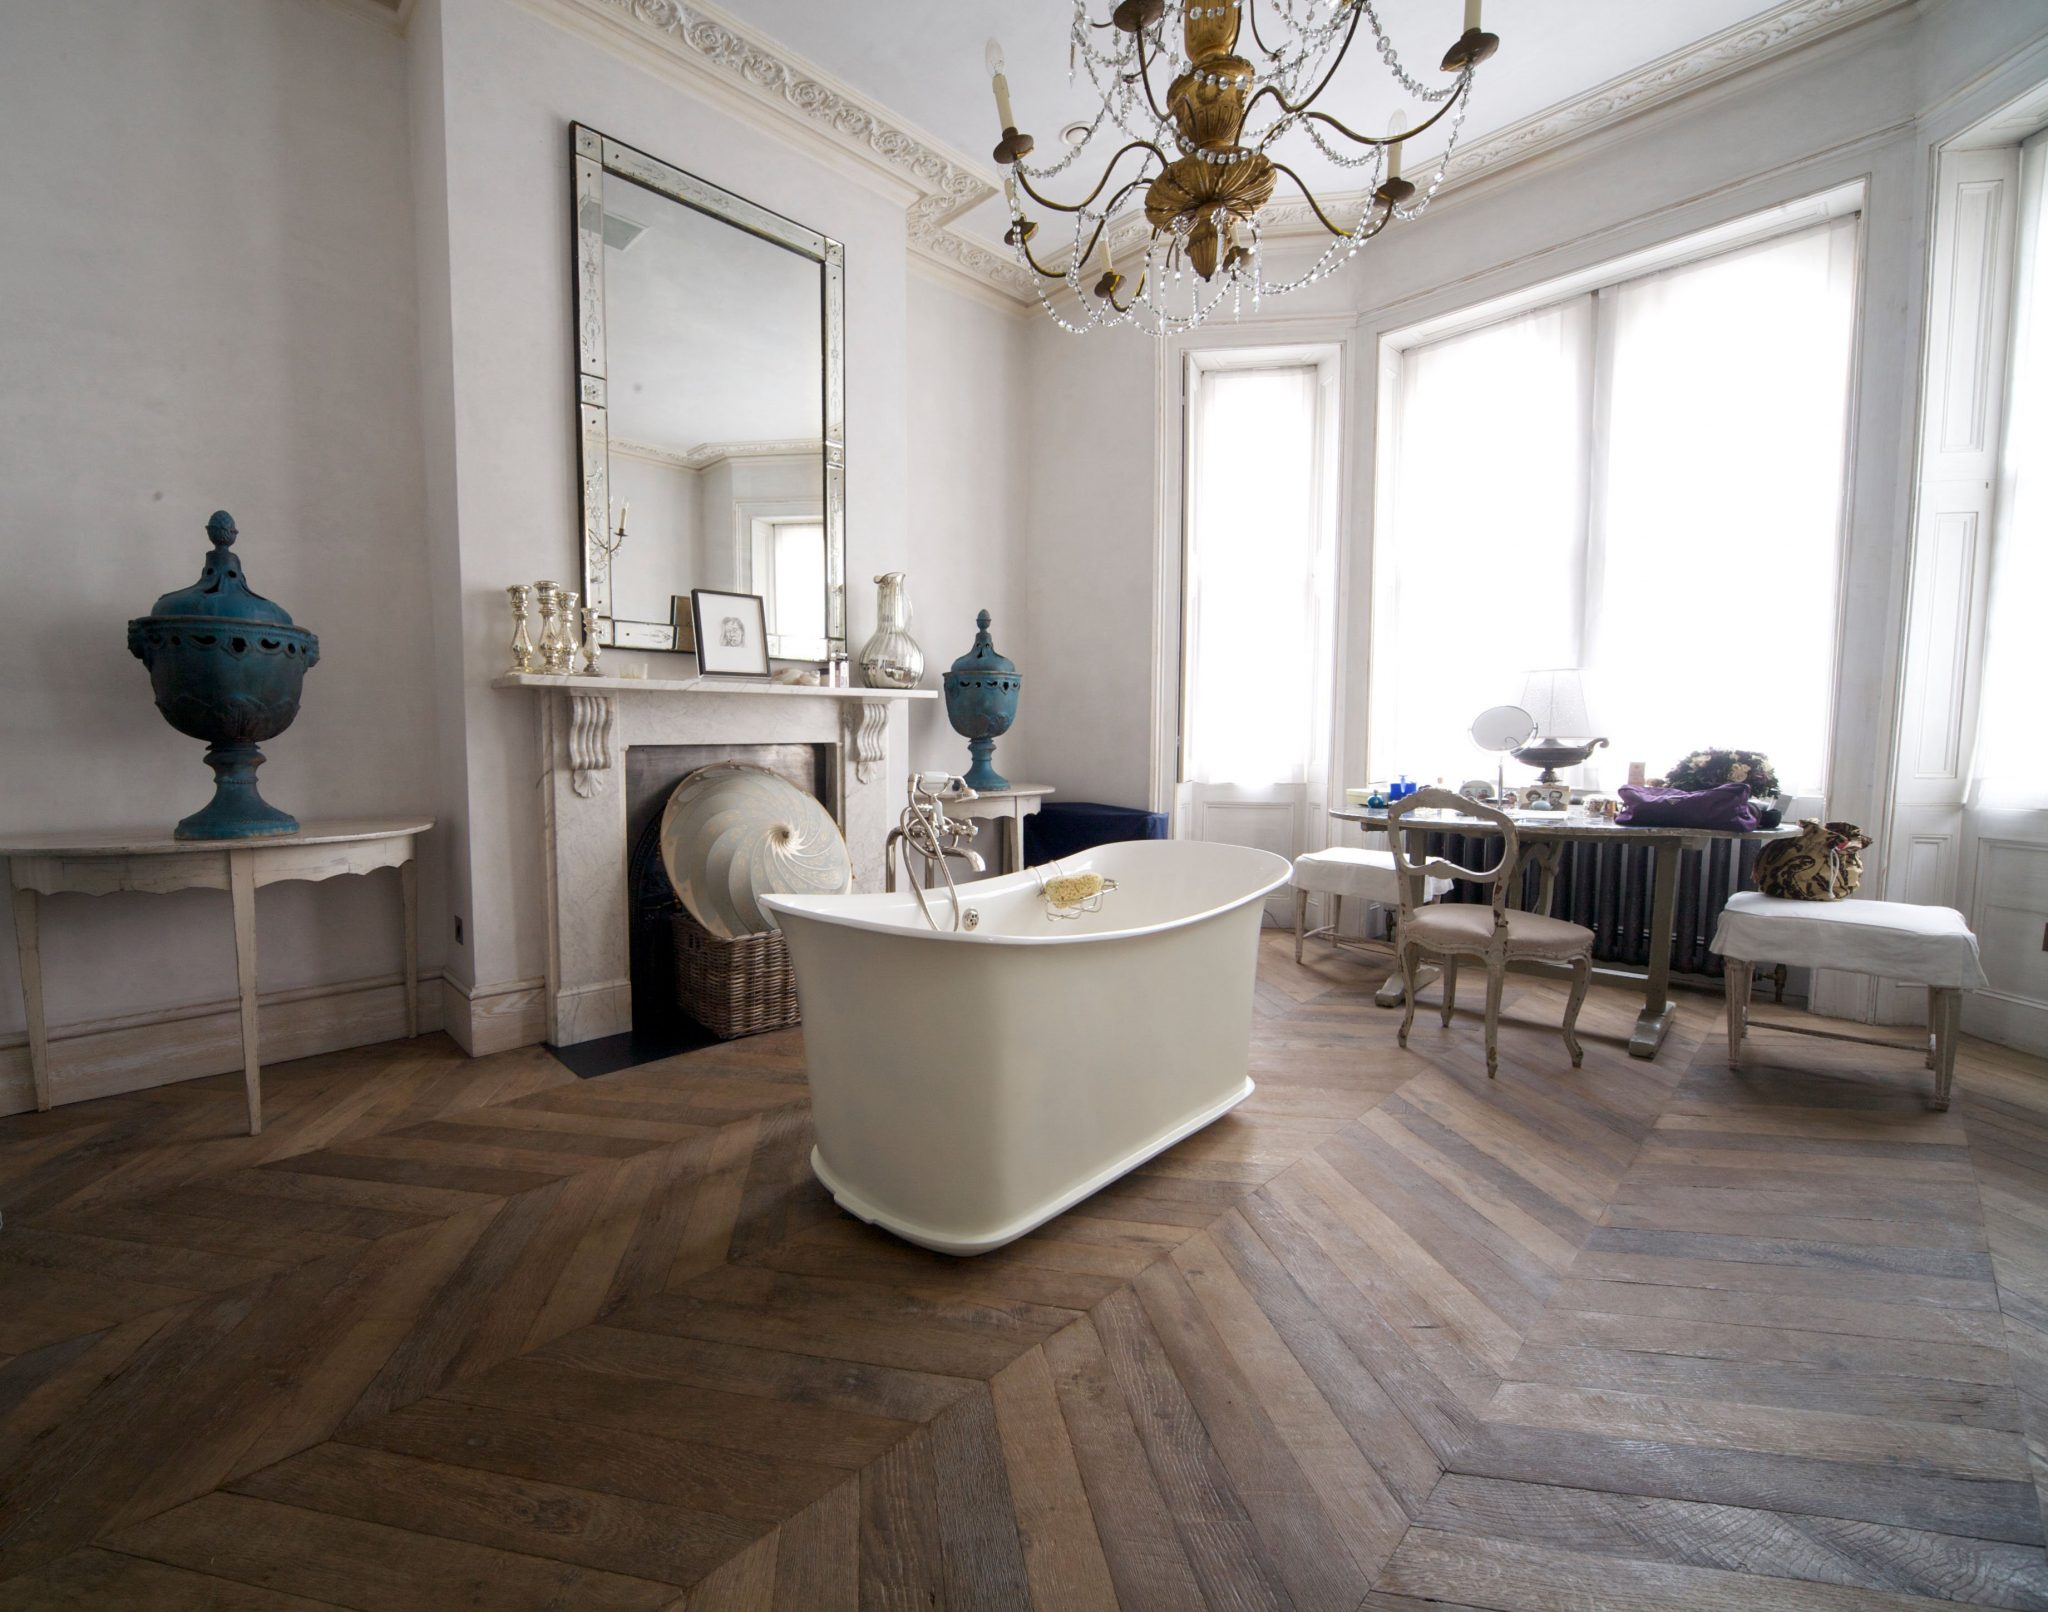 Bathroom with a slipper bath and dark wooden floor